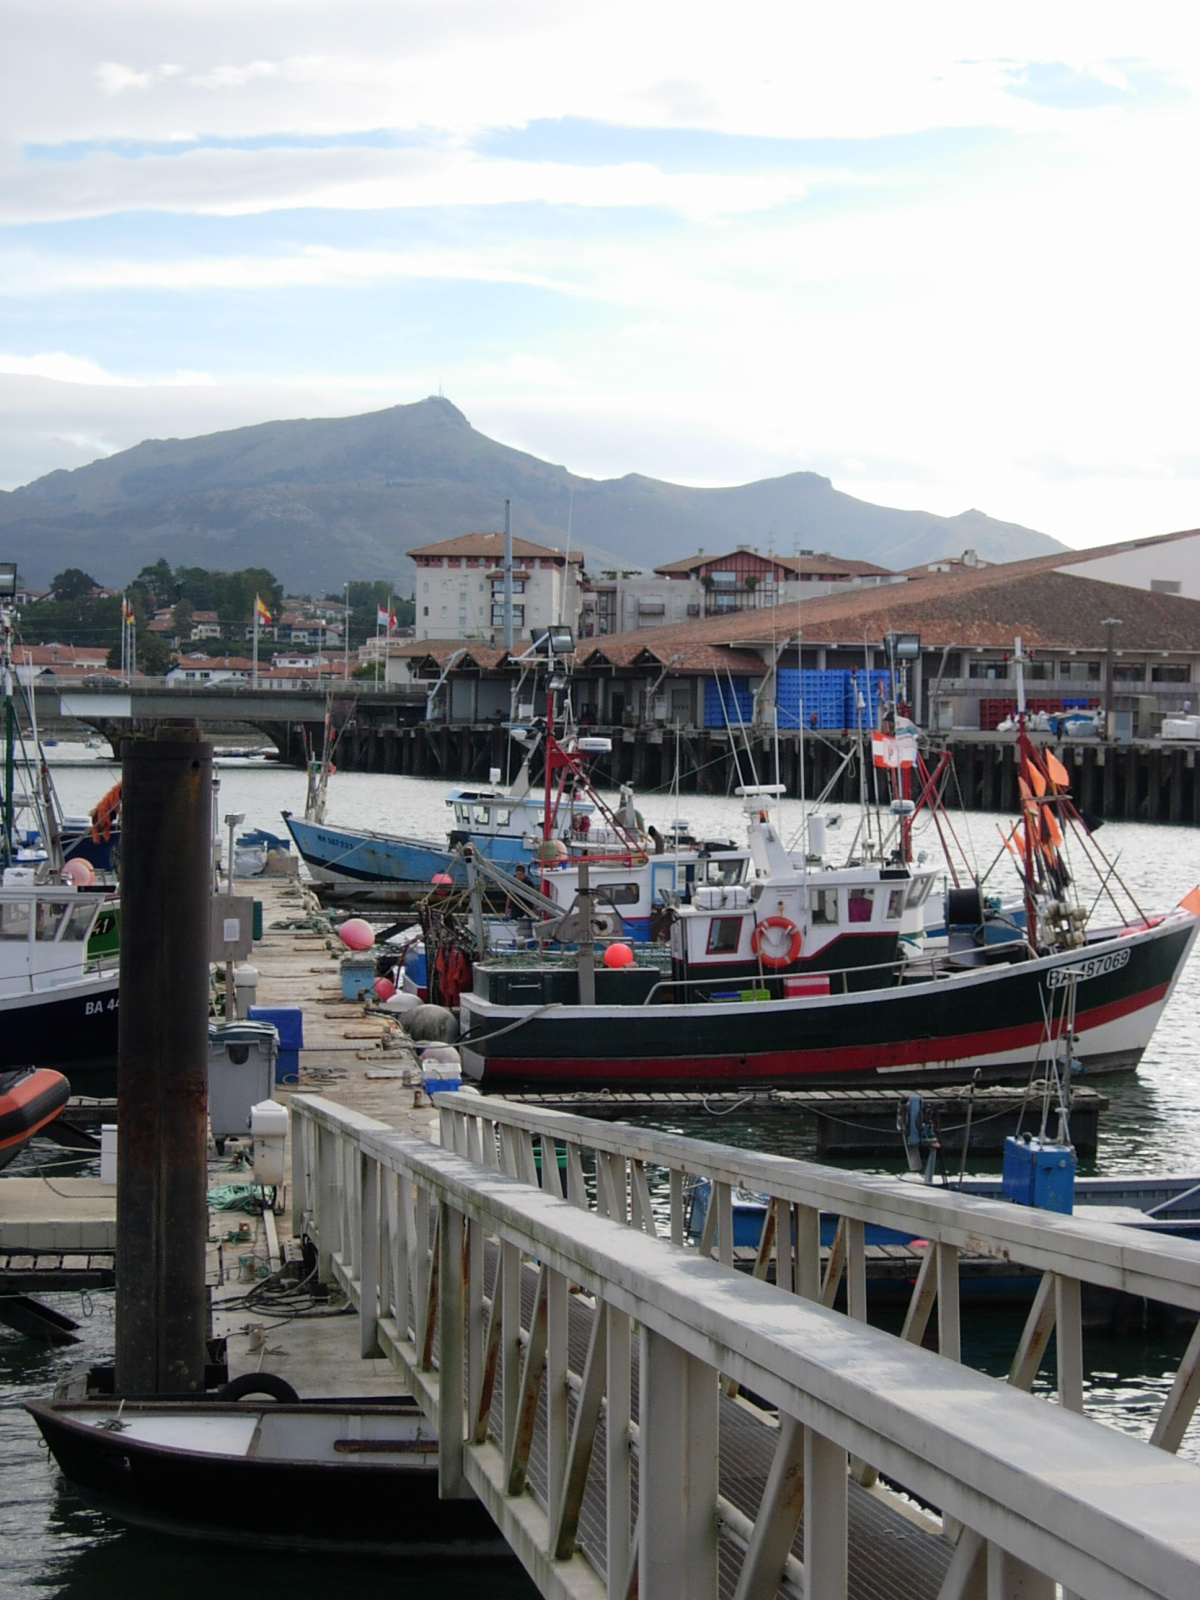 Mes bons plans au pays basque mademoiselle bon plan - Office tourisme saint jean de luz ...